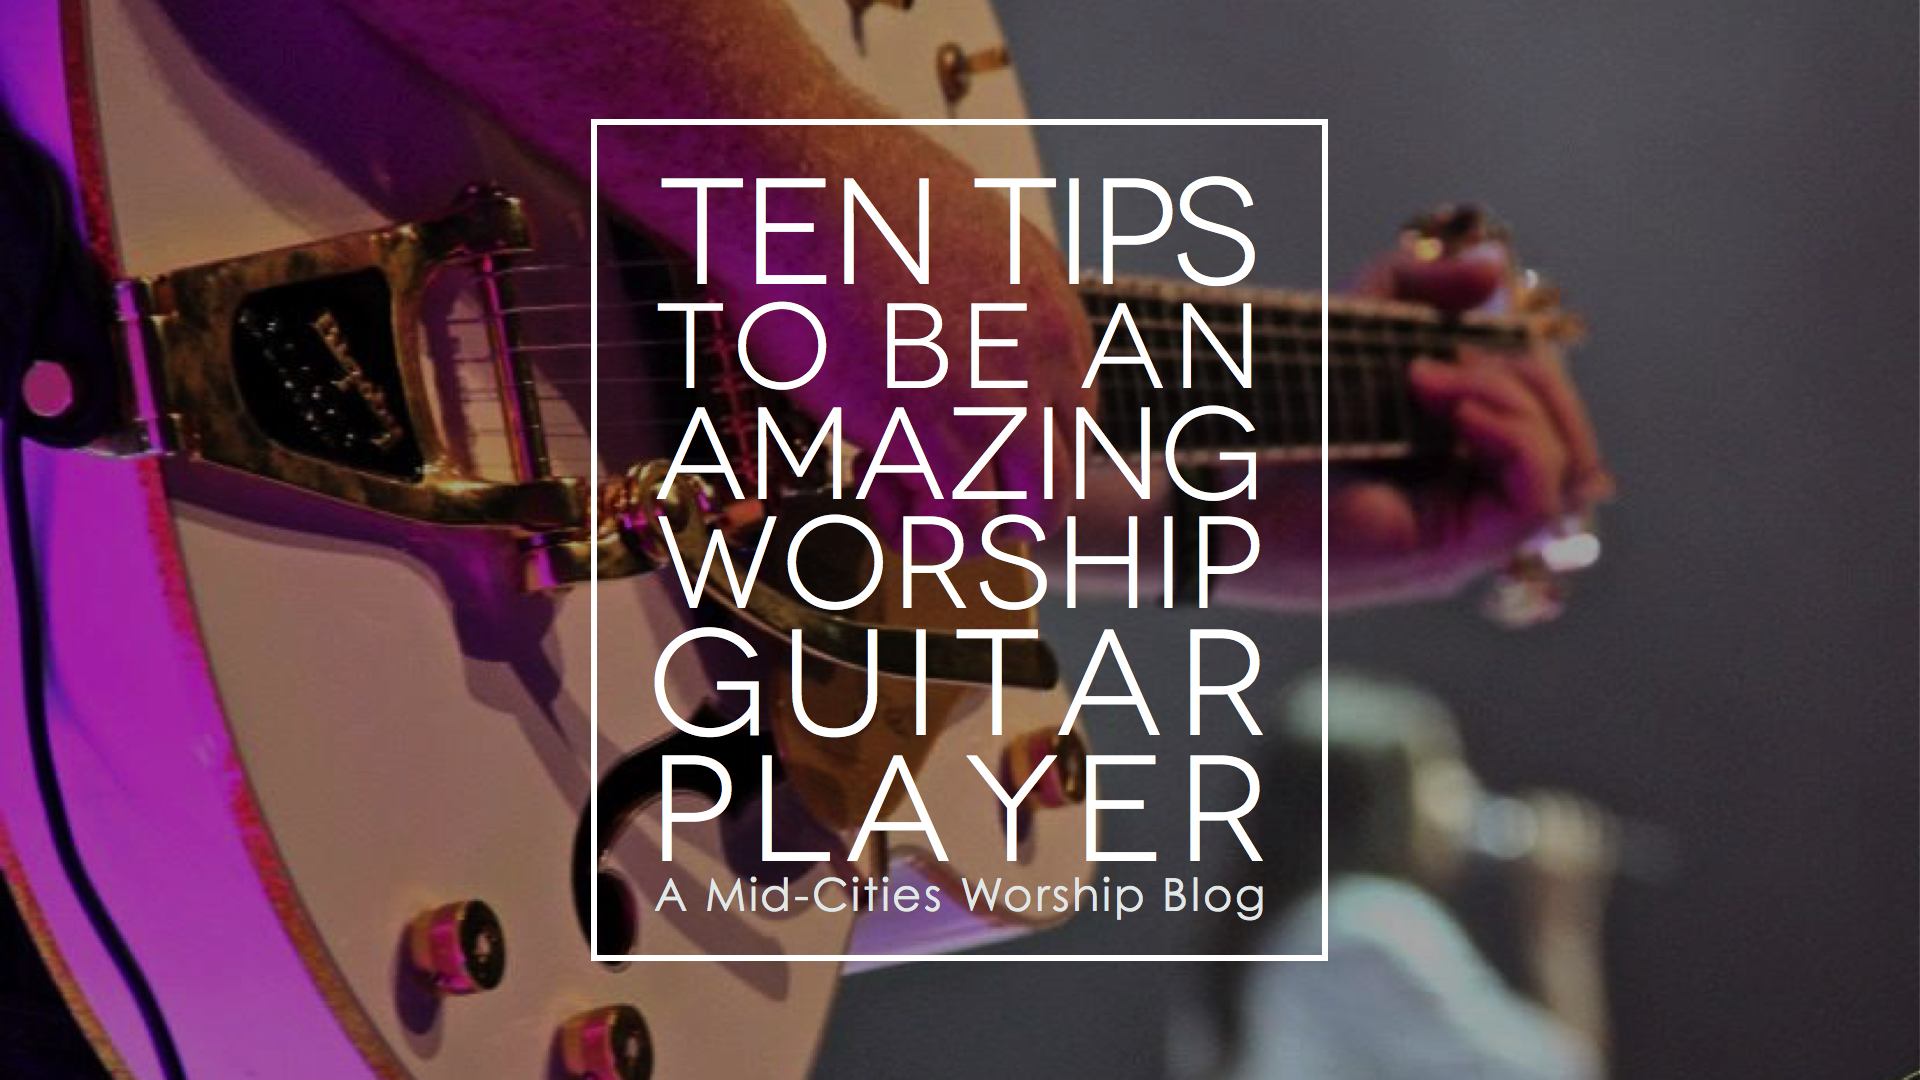 Mid Cities Worship Ten Tips To Be An Amazing Worship Guitar Player